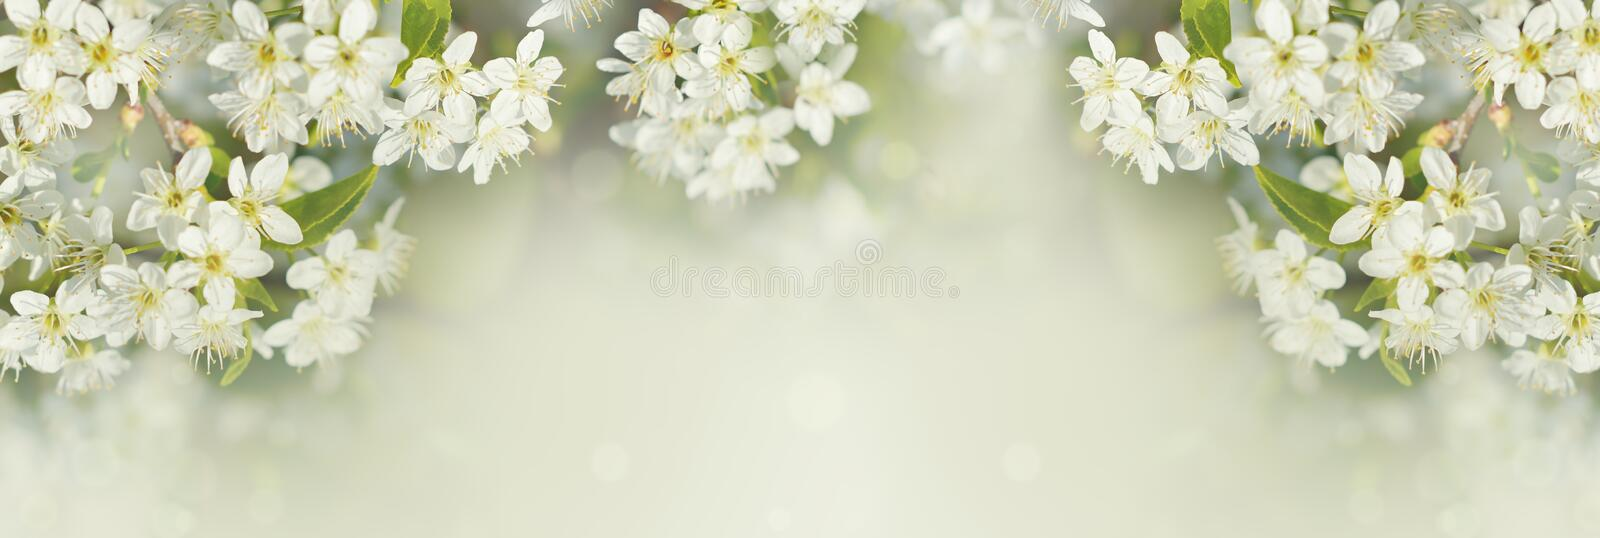 Spring branches of cherry tree with white flowers and fresh green leaves stock photo